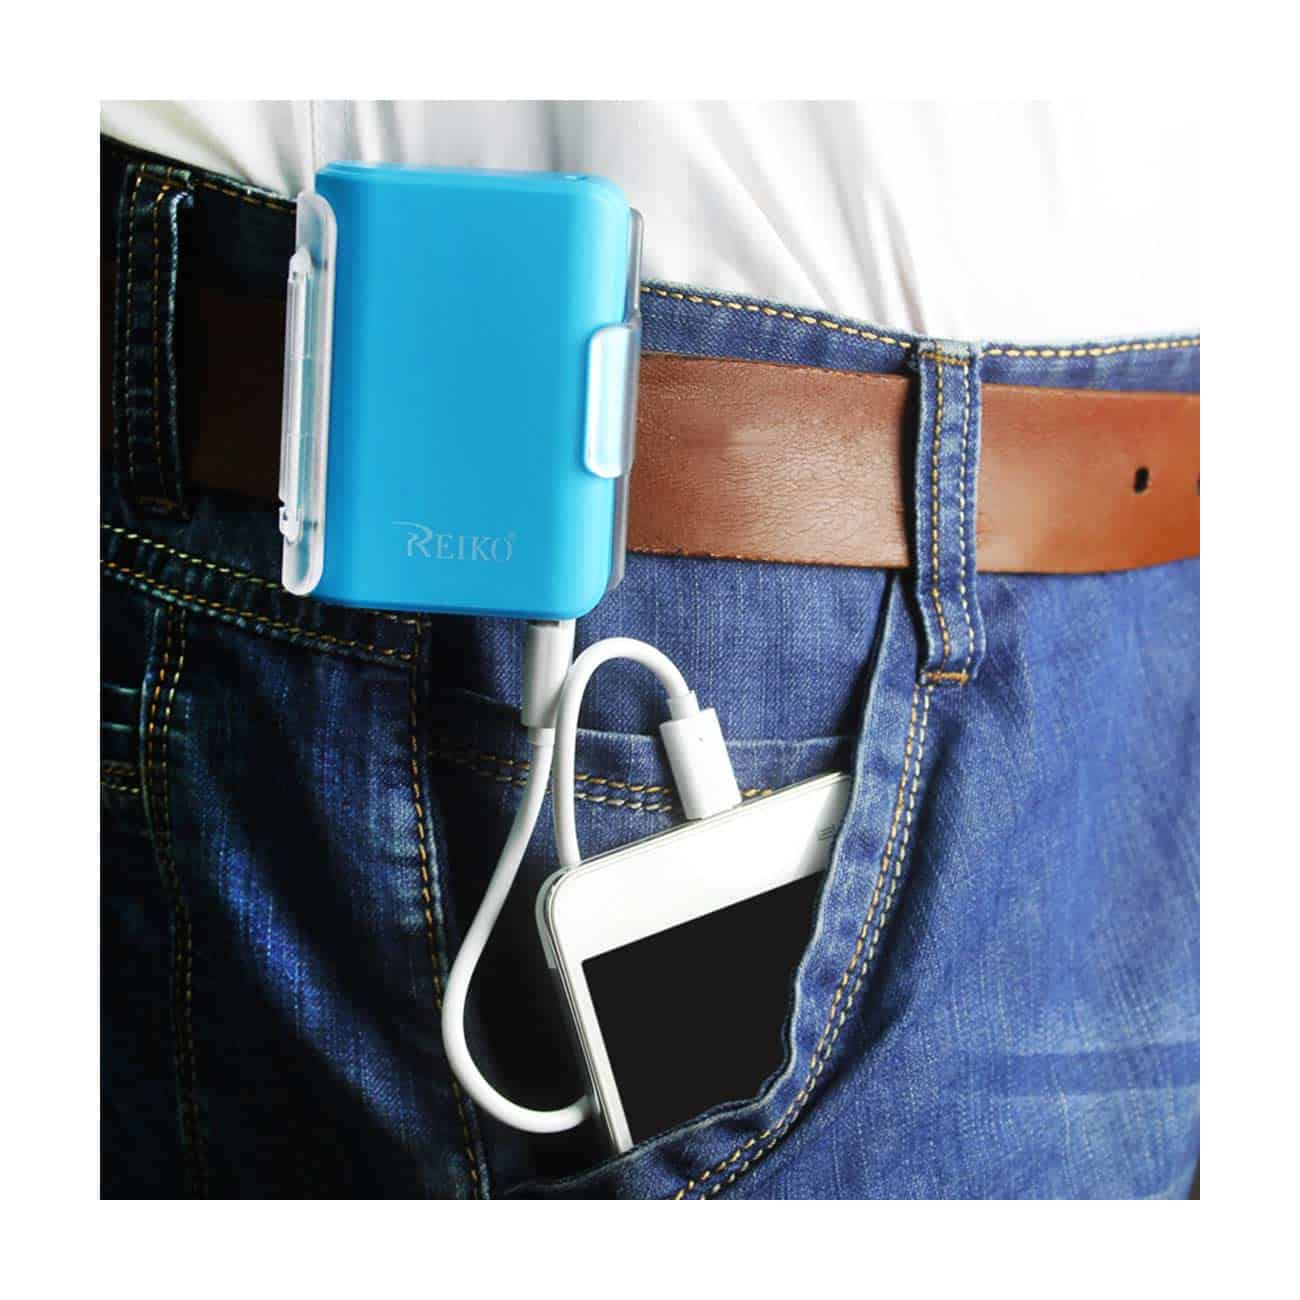 4000MAH UNIVERSAL POWER BANK WITH CABLE IN BLUE